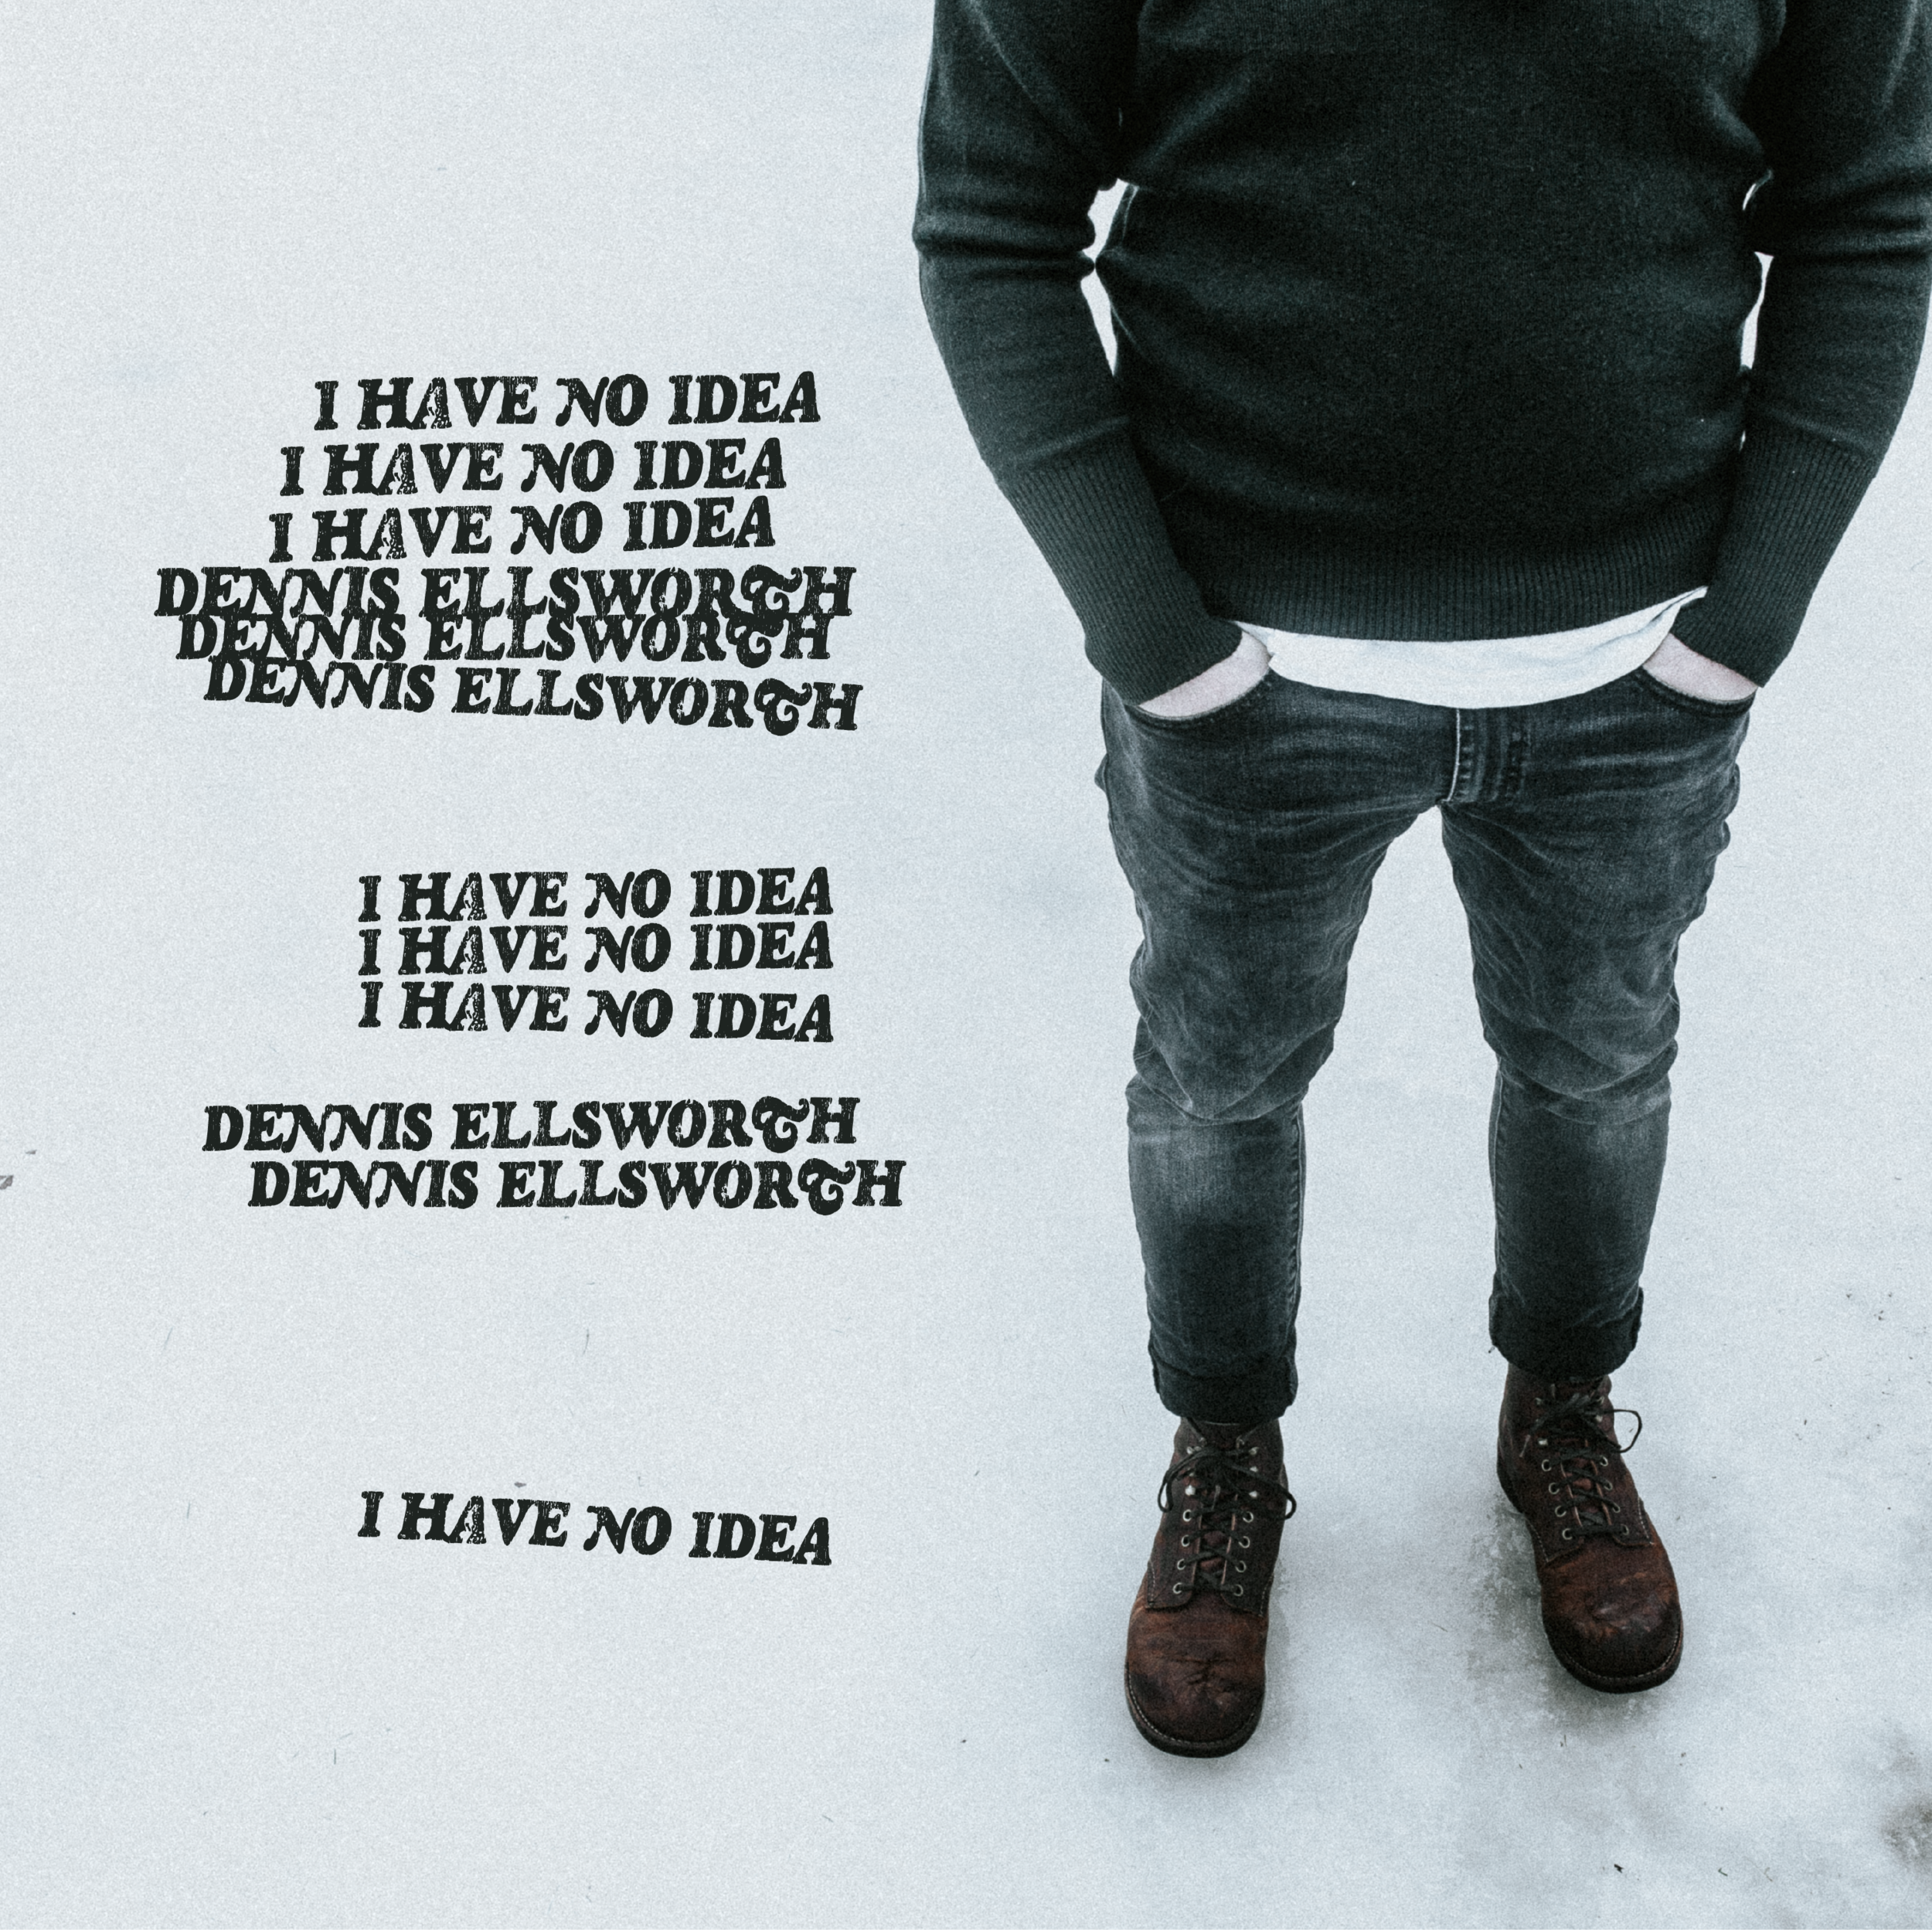 I HAVE NO IDEA (2018) - SINGLE - PRODUCED BY DENNIS ELLSWORTH + ADAM GALLANTENGINEERED BY ADAM GALLANTRECORDED AT HILL SOUND STUDIOS, CHARLOTTETOWN, PRINCE EDWARD ISLANDTRACKLIST:I HAVE NO IDEA